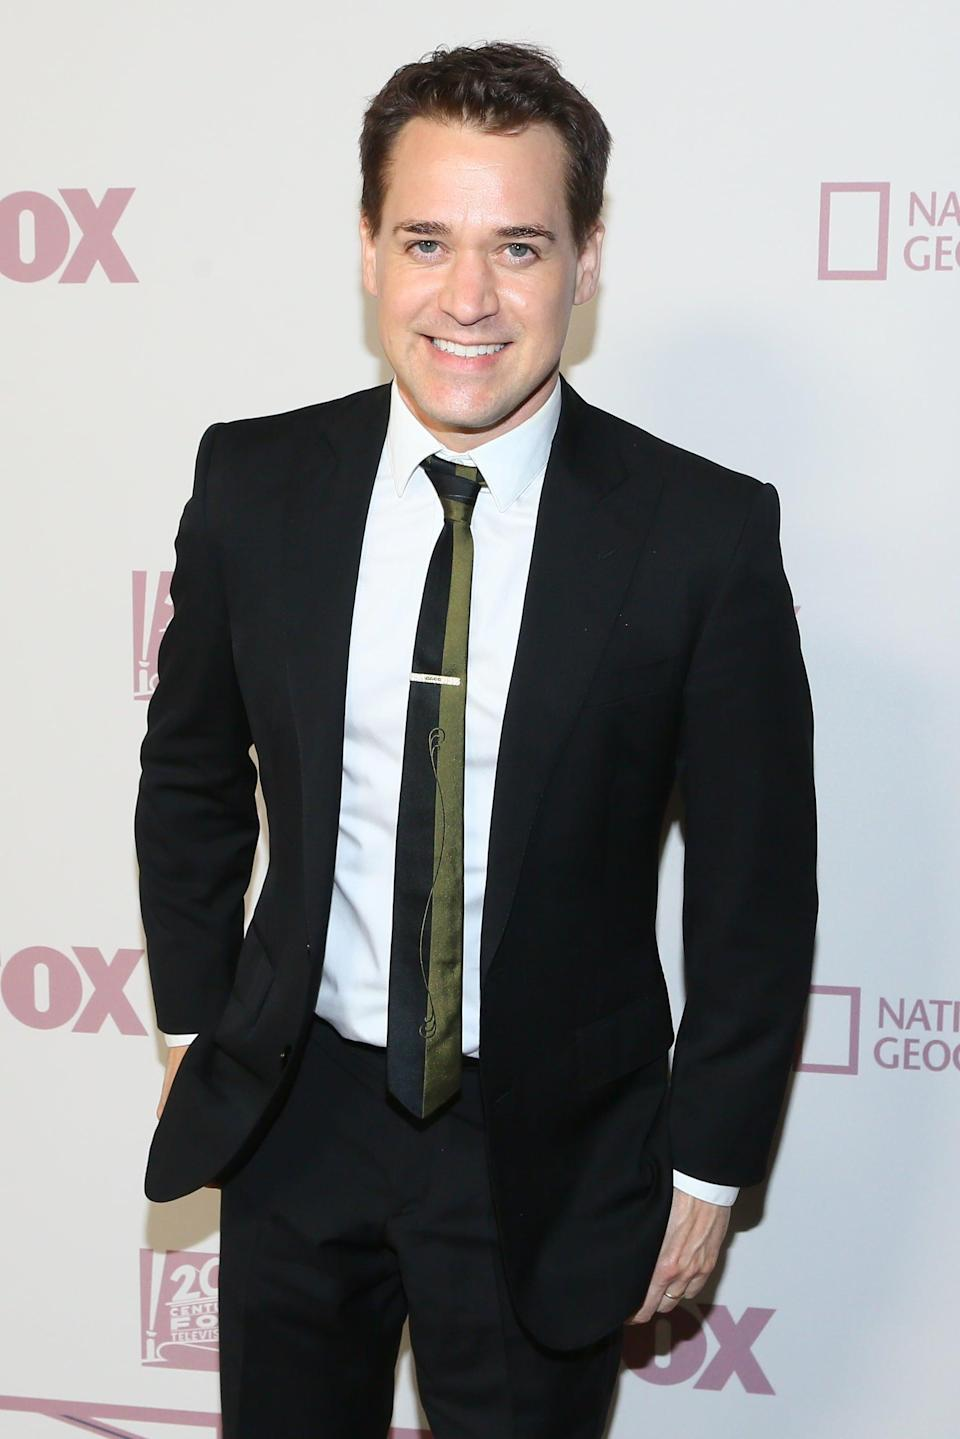 """<p>Although T. R. Knight's George O'Malley has been gone for a <em>long</em> time now, if Meredith is going around talking to all her dead loved ones on a beach, he would definitely be one to show up! George's friendship had such a profound effect on Meredith, it wouldn't be surprising if he were one of the people giving her a bit of peace of mind while she's in turmoil. </p> <p>Knight is listed as being in the show in 2020, which definitely lends some credibility to the idea that he could be making an appearance. Like Derek, he wouldn't have to do much other than be his usual charming self! And considering that Knight and <a class=""""link rapid-noclick-resp"""" href=""""https://www.popsugar.com/Ellen-Pompeo"""" rel=""""nofollow noopener"""" target=""""_blank"""" data-ylk=""""slk:Ellen Pompeo"""">Ellen Pompeo</a> are such good friends, it isn't hard to believe that they would make it work.</p>"""